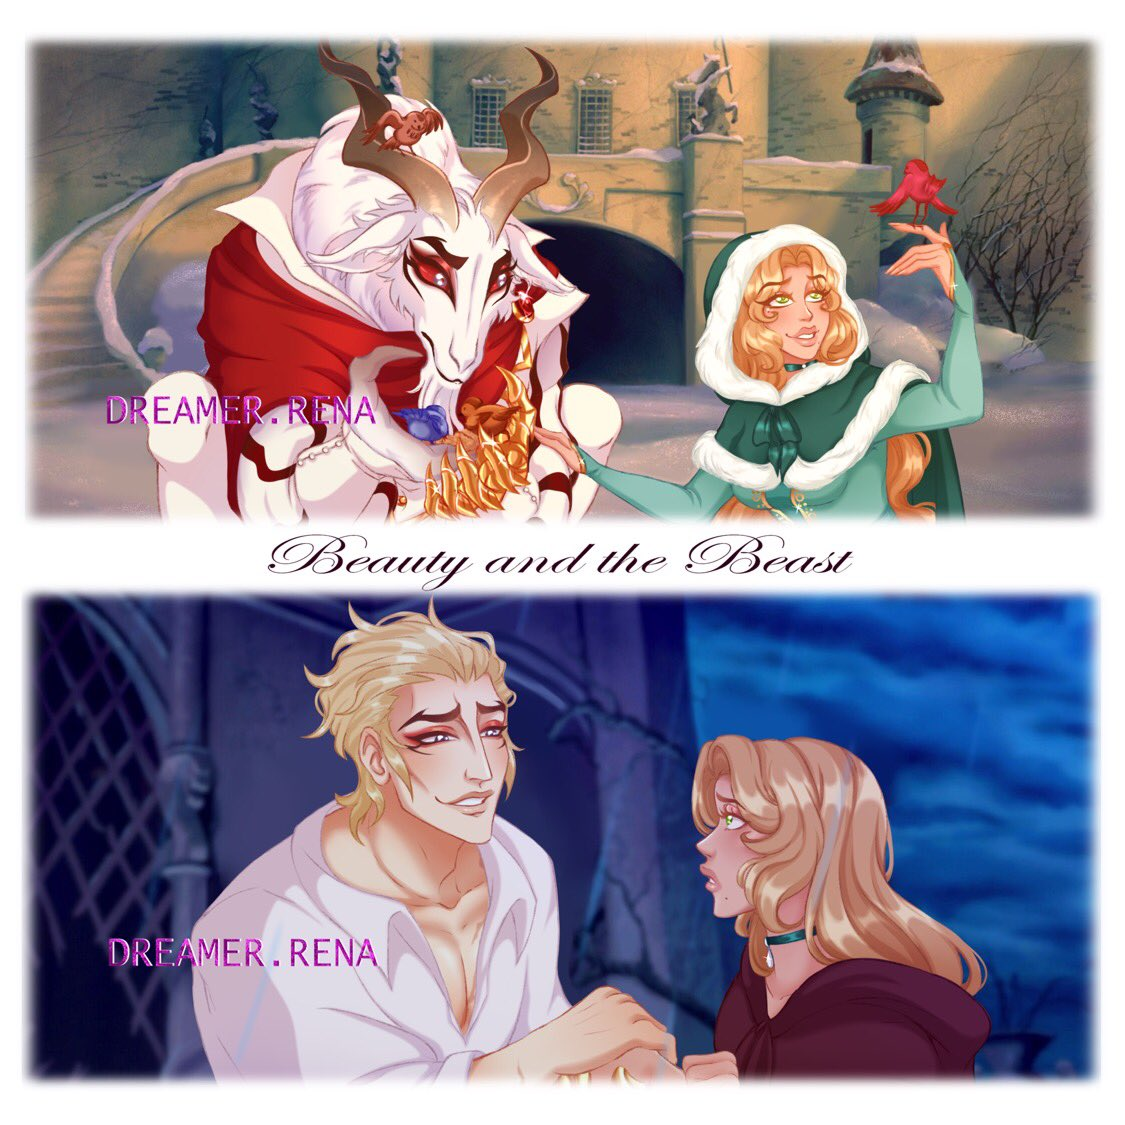 Beauty and the Beast another AU with Lucio and Clara  Lucio belongs to @thearcanagame #thearcana #TheArcanaGame #countlucio #luciomorgasson #montagmorgasson #thearcanalucio #renaocclarapic.twitter.com/8LLezMWK2u